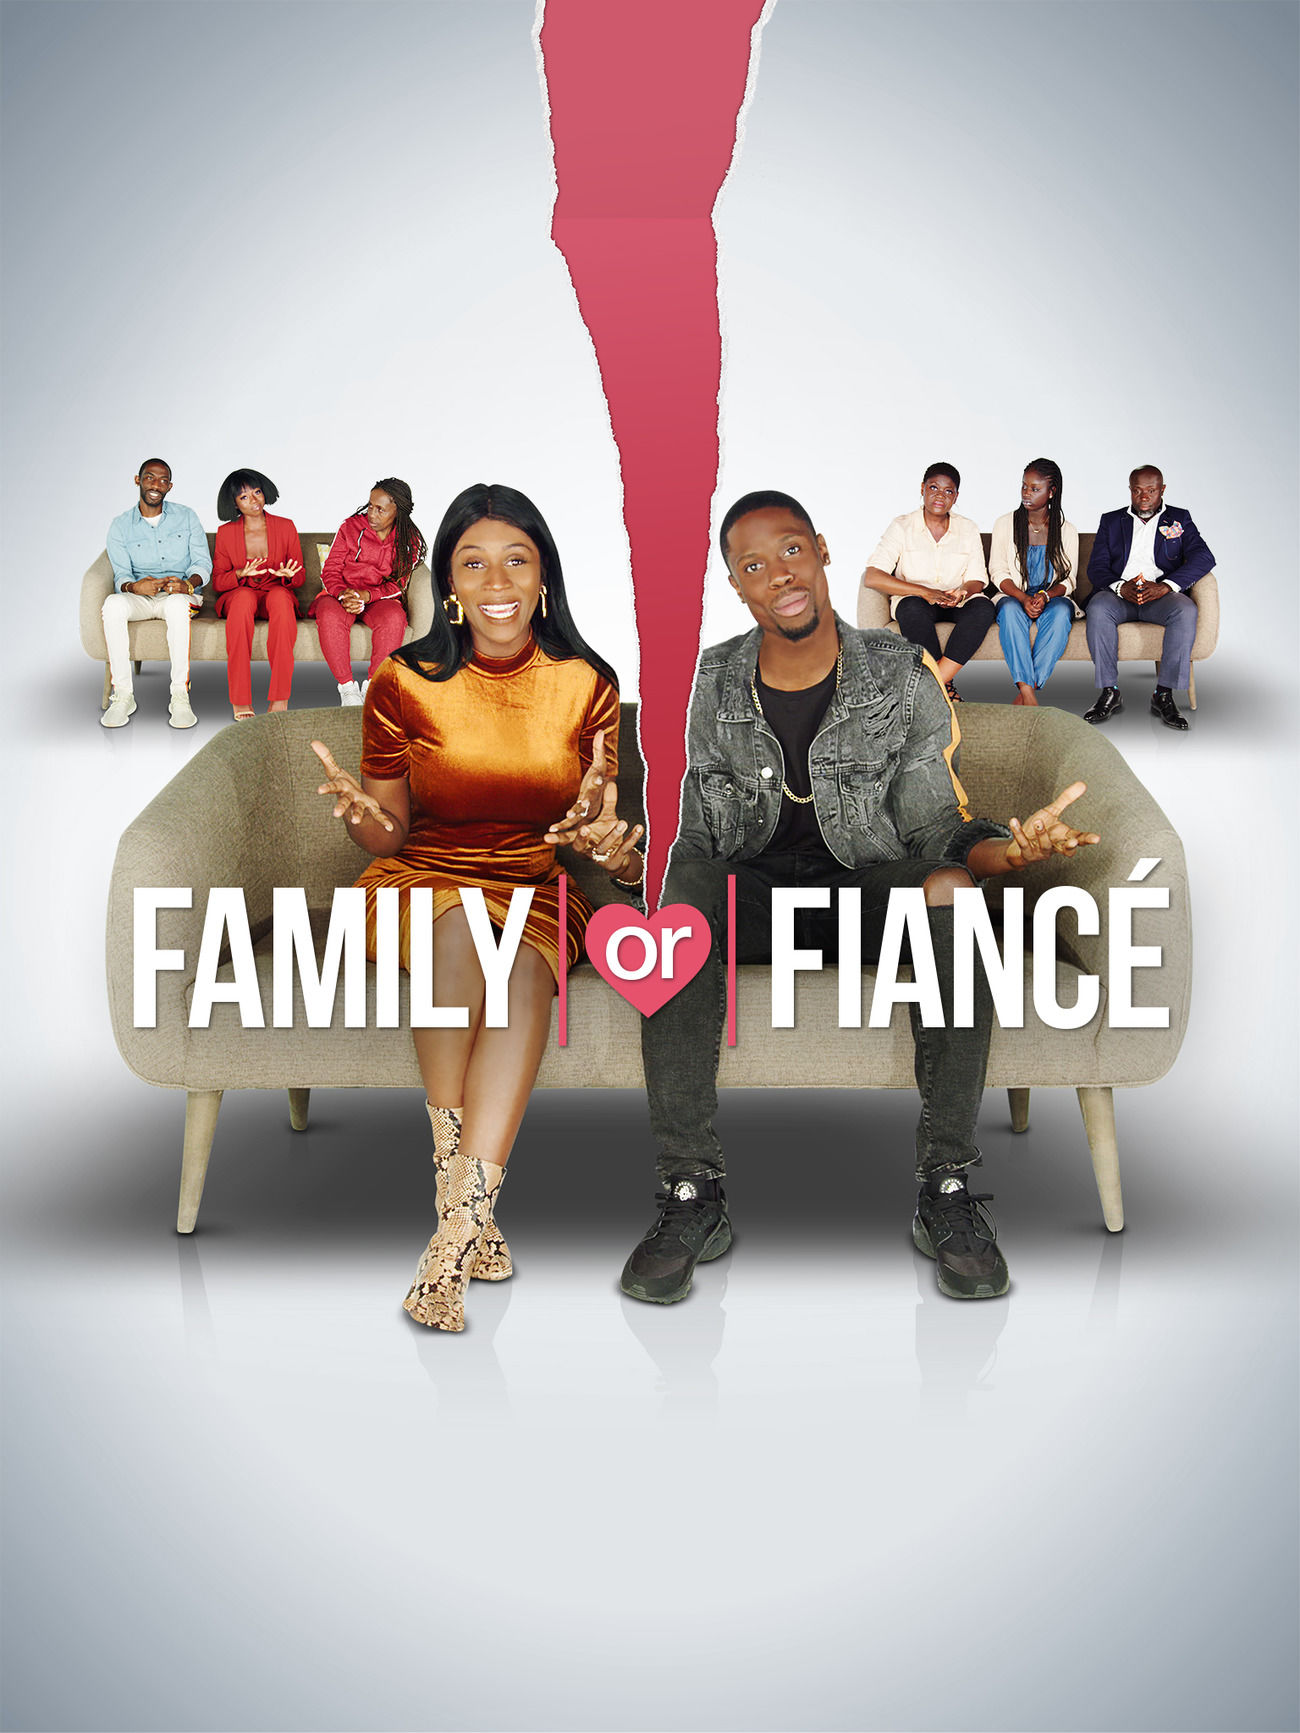 Family or Fiancé - Season 3 Episode 1 - Imani & Colby